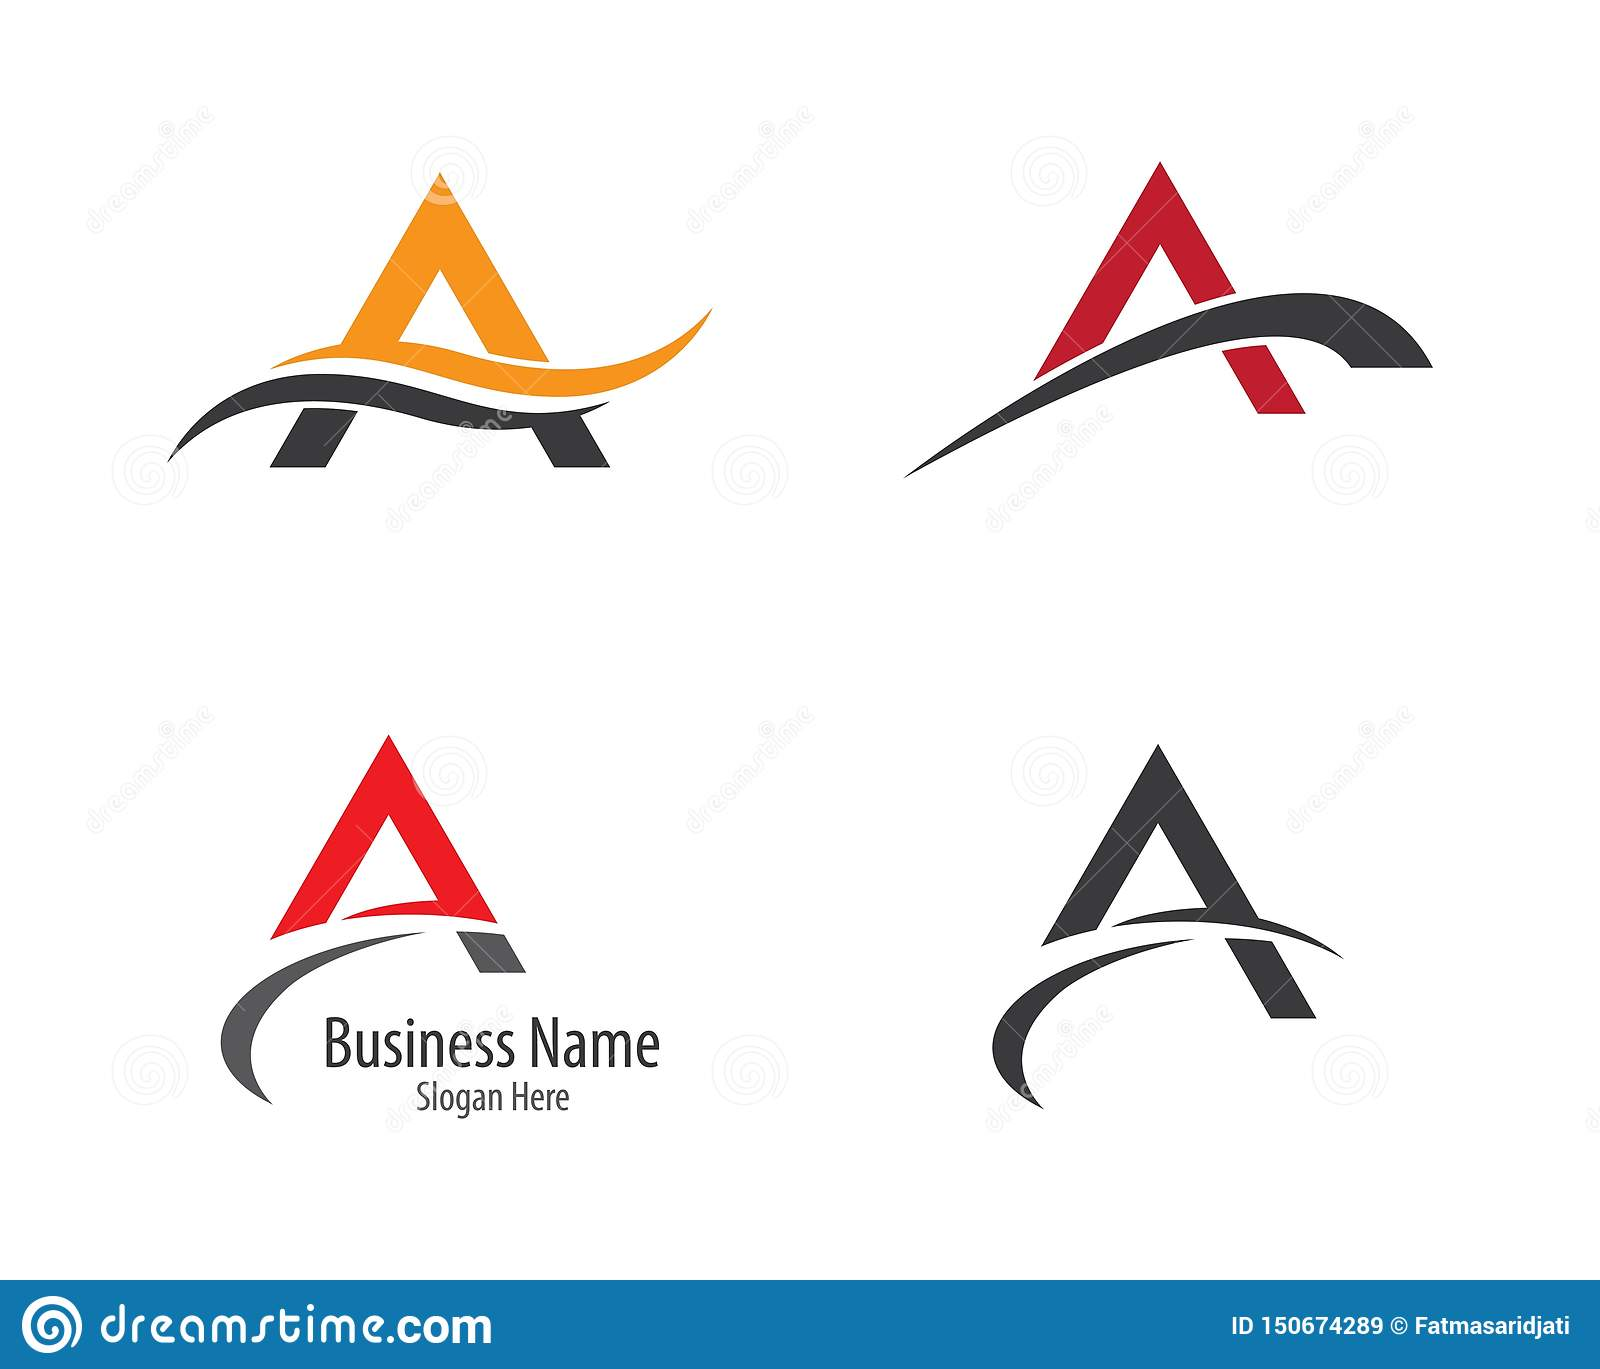 A letter logo vector icon illustration